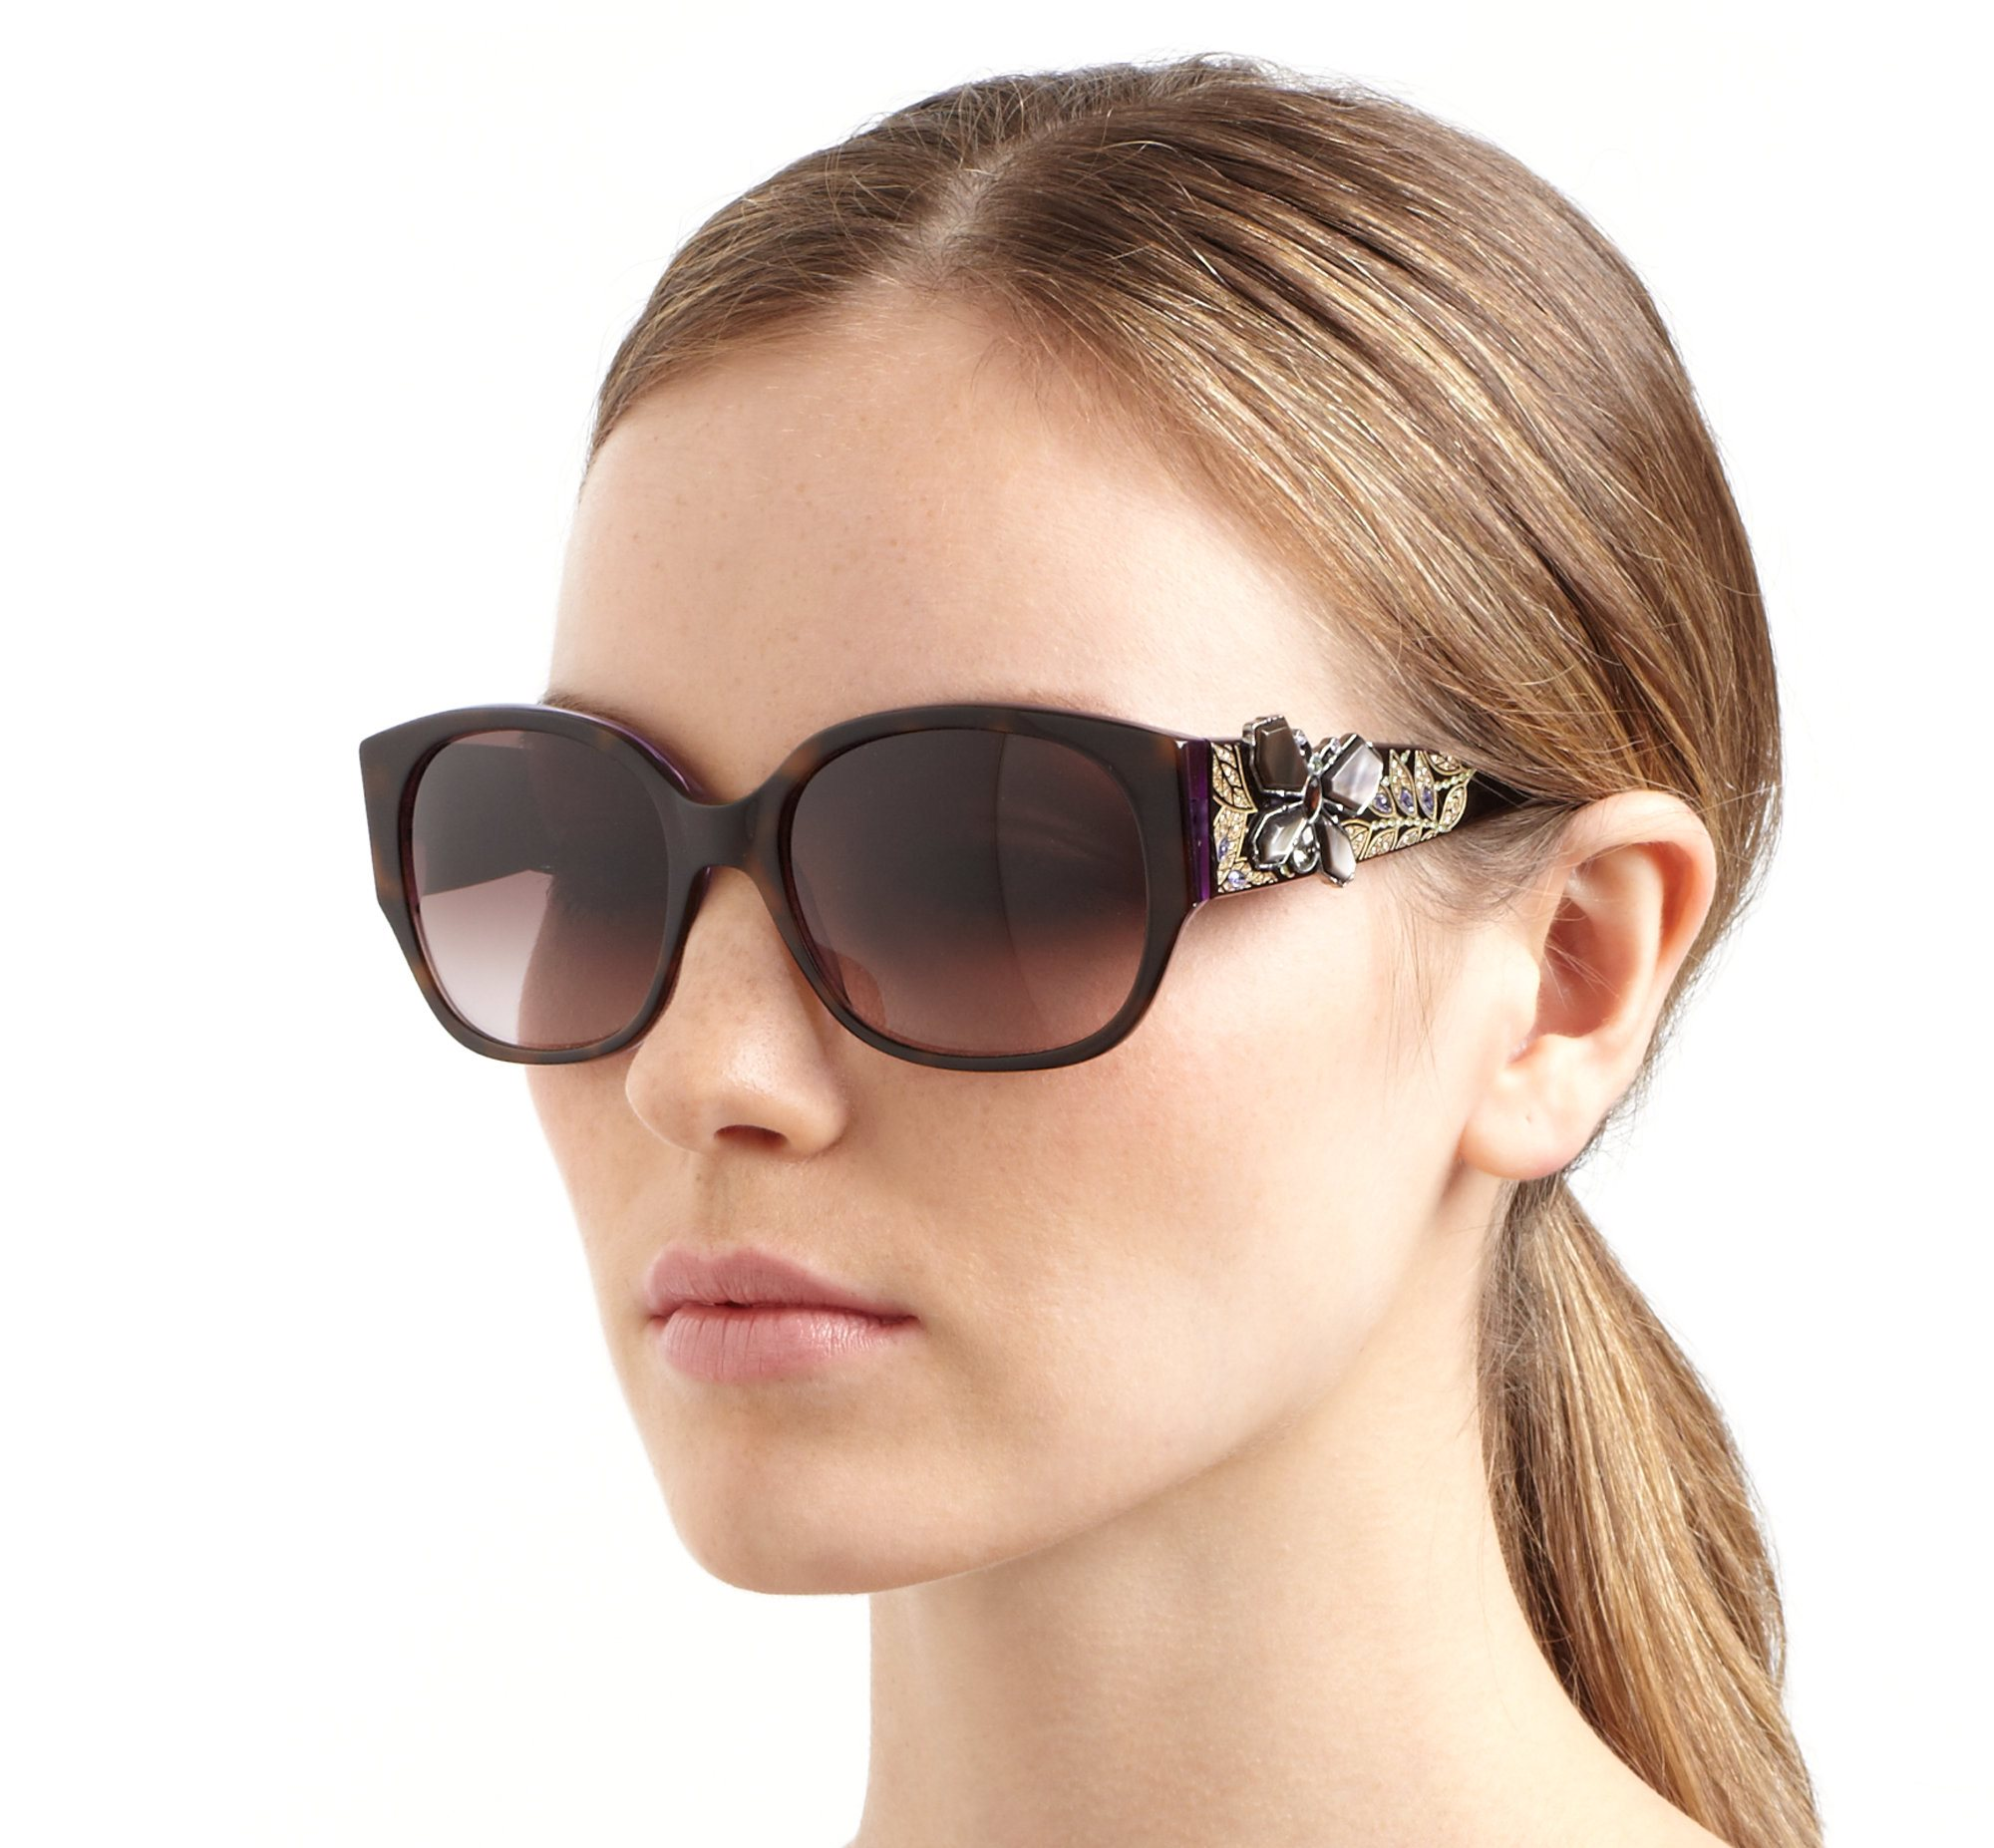 judith leiber ruby square butterfly sunglasses product 1 6574955 597785220 1.jpeg